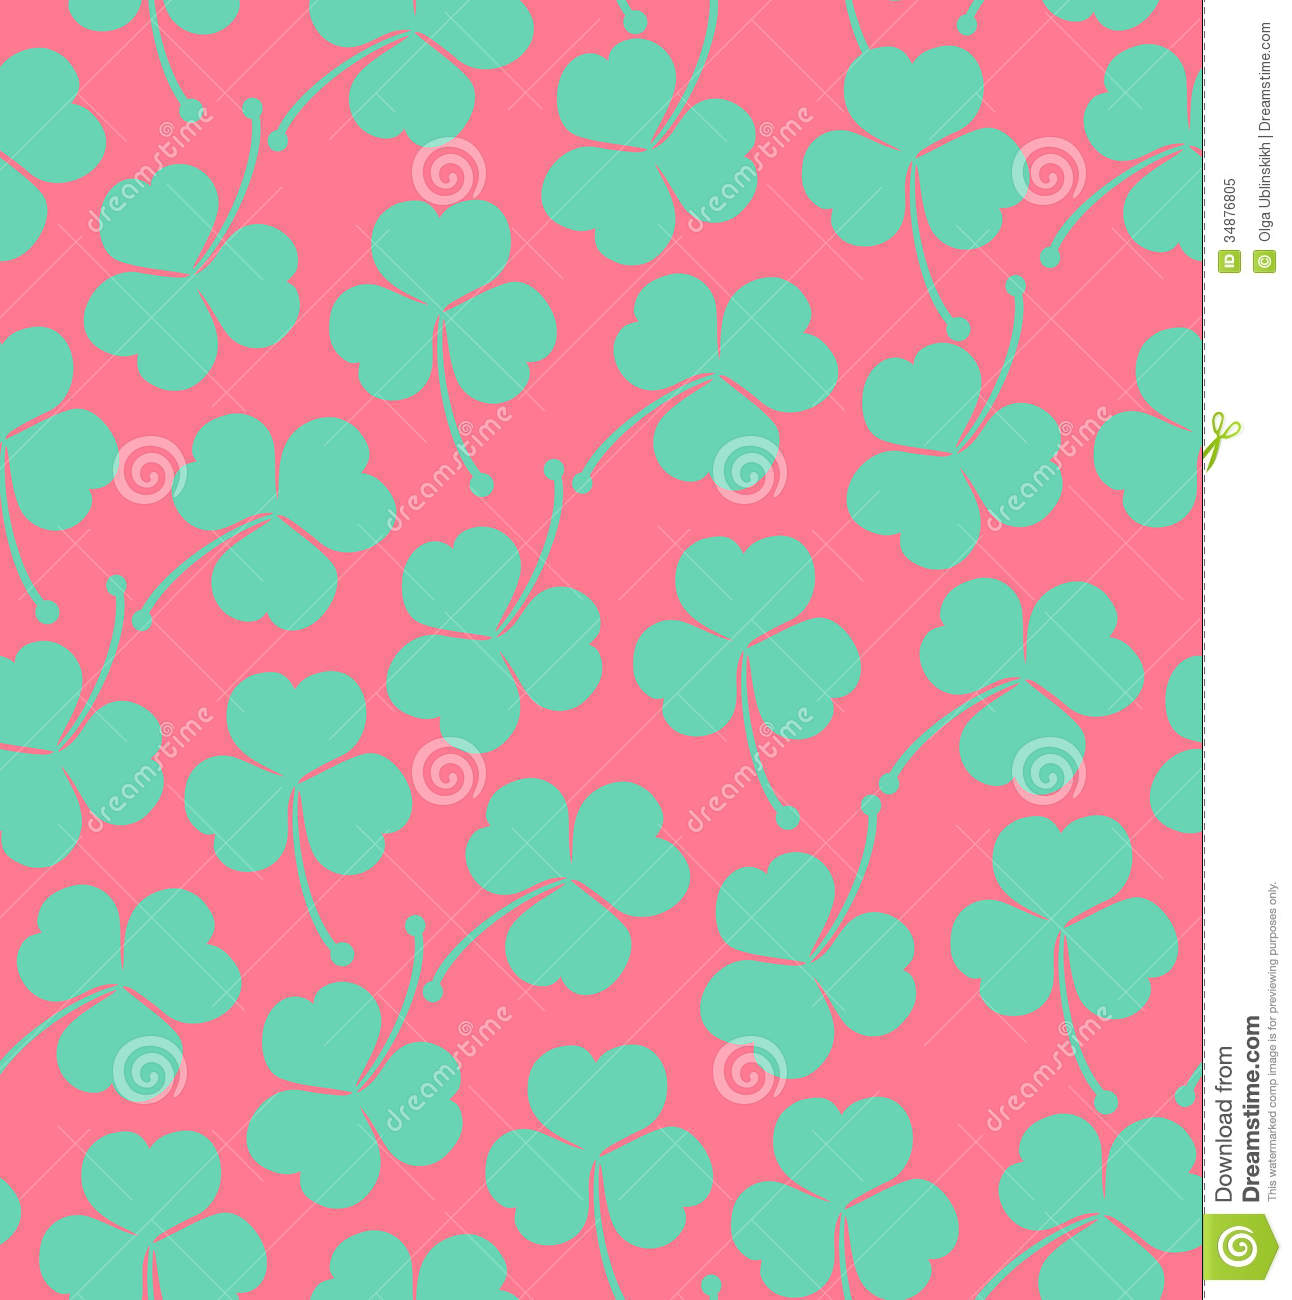 Seamless cute pattern with clover trefoil endless background seamless cute pattern with clover trefoil endless background texture for wallpapers packaging textile crafts voltagebd Image collections